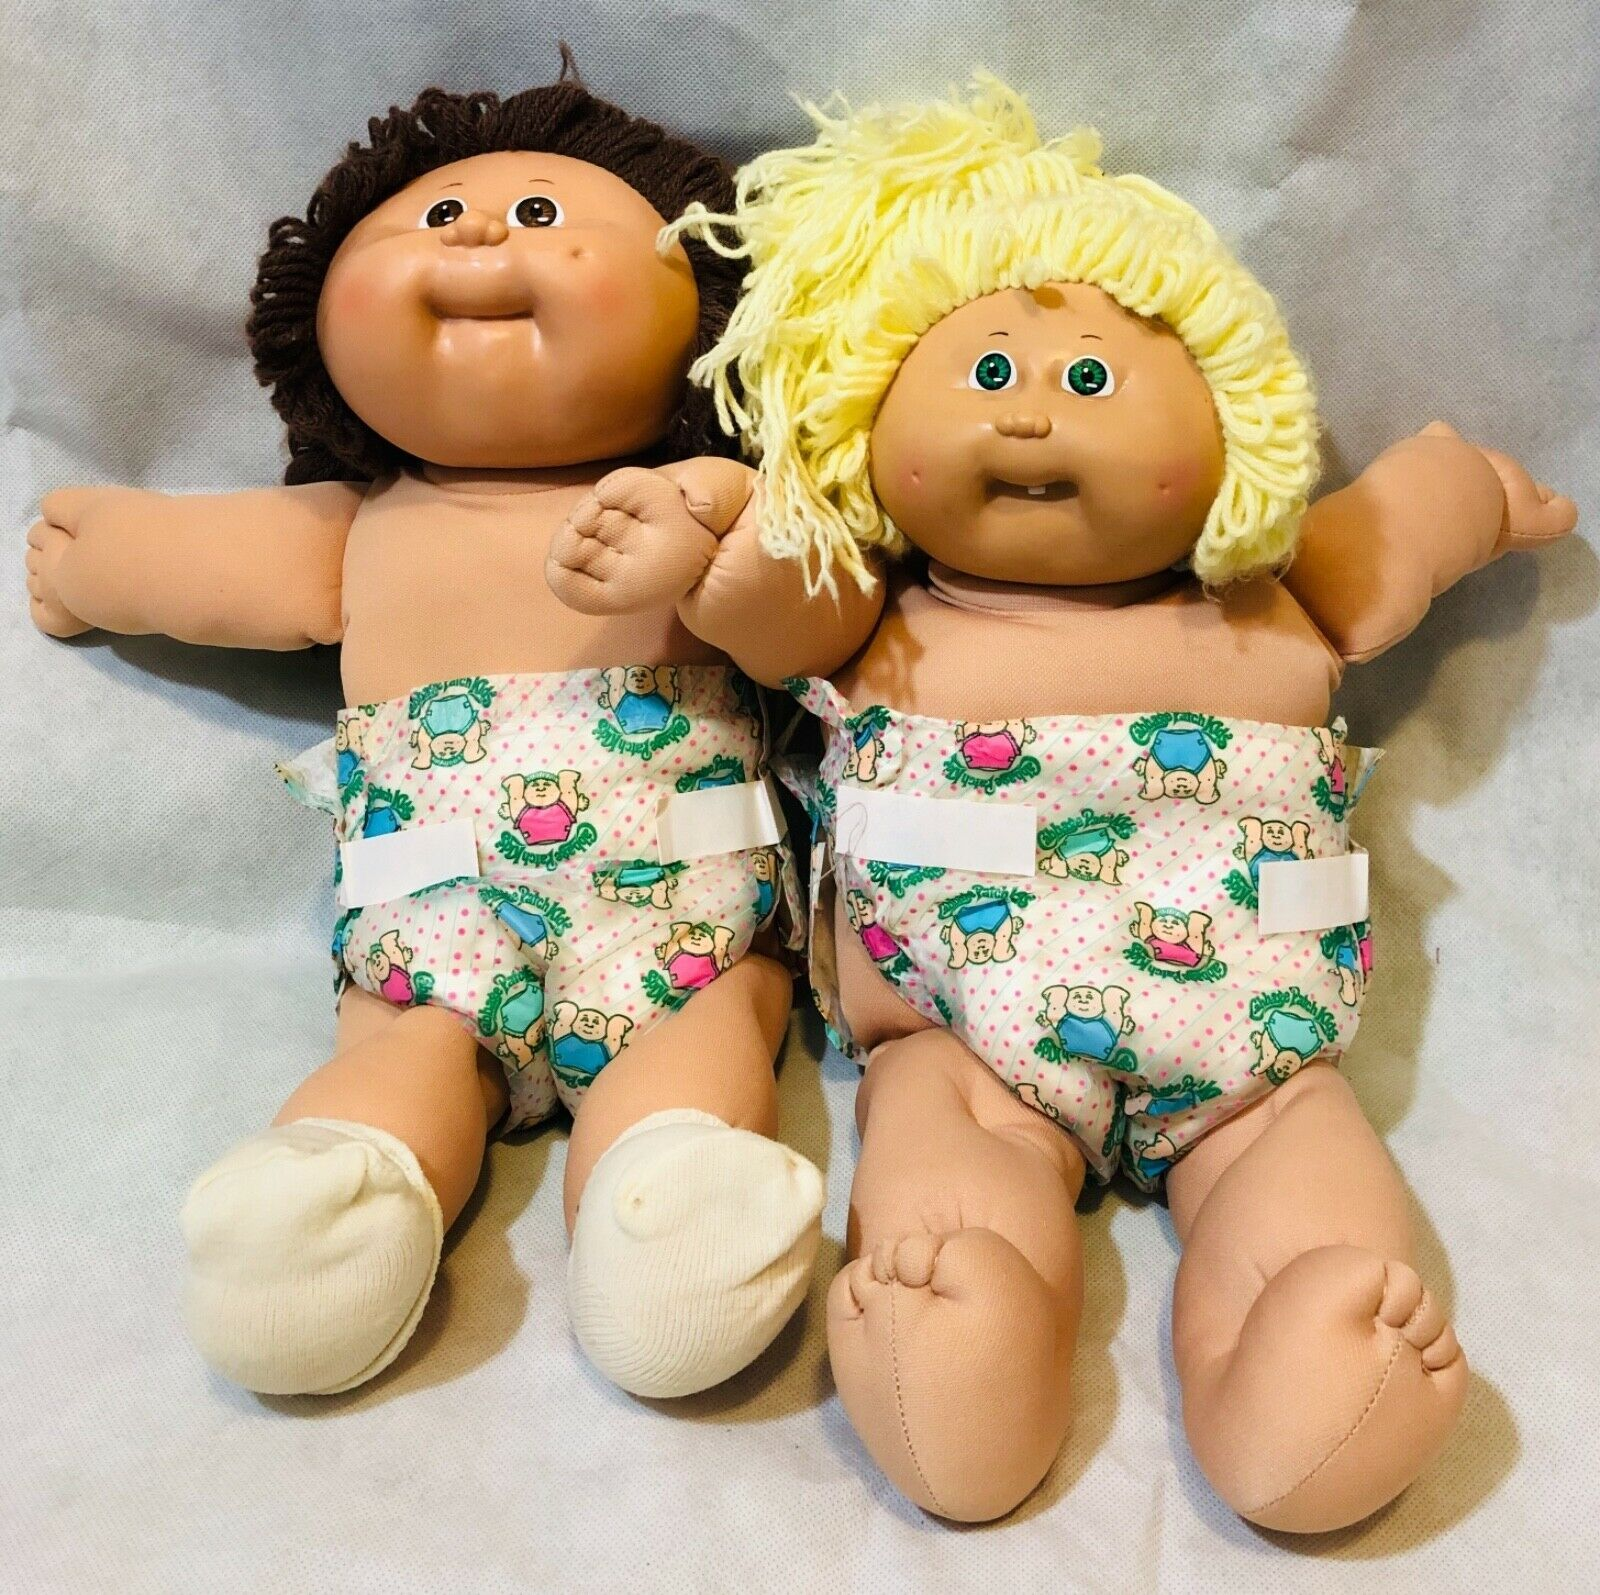 Vintage 80s Cabbage Patch Kids Dolls Lot Of 2 Blonde Brunette Tooth Collectible Ebay Cabbage Patch Kids Patch Kids Child Doll